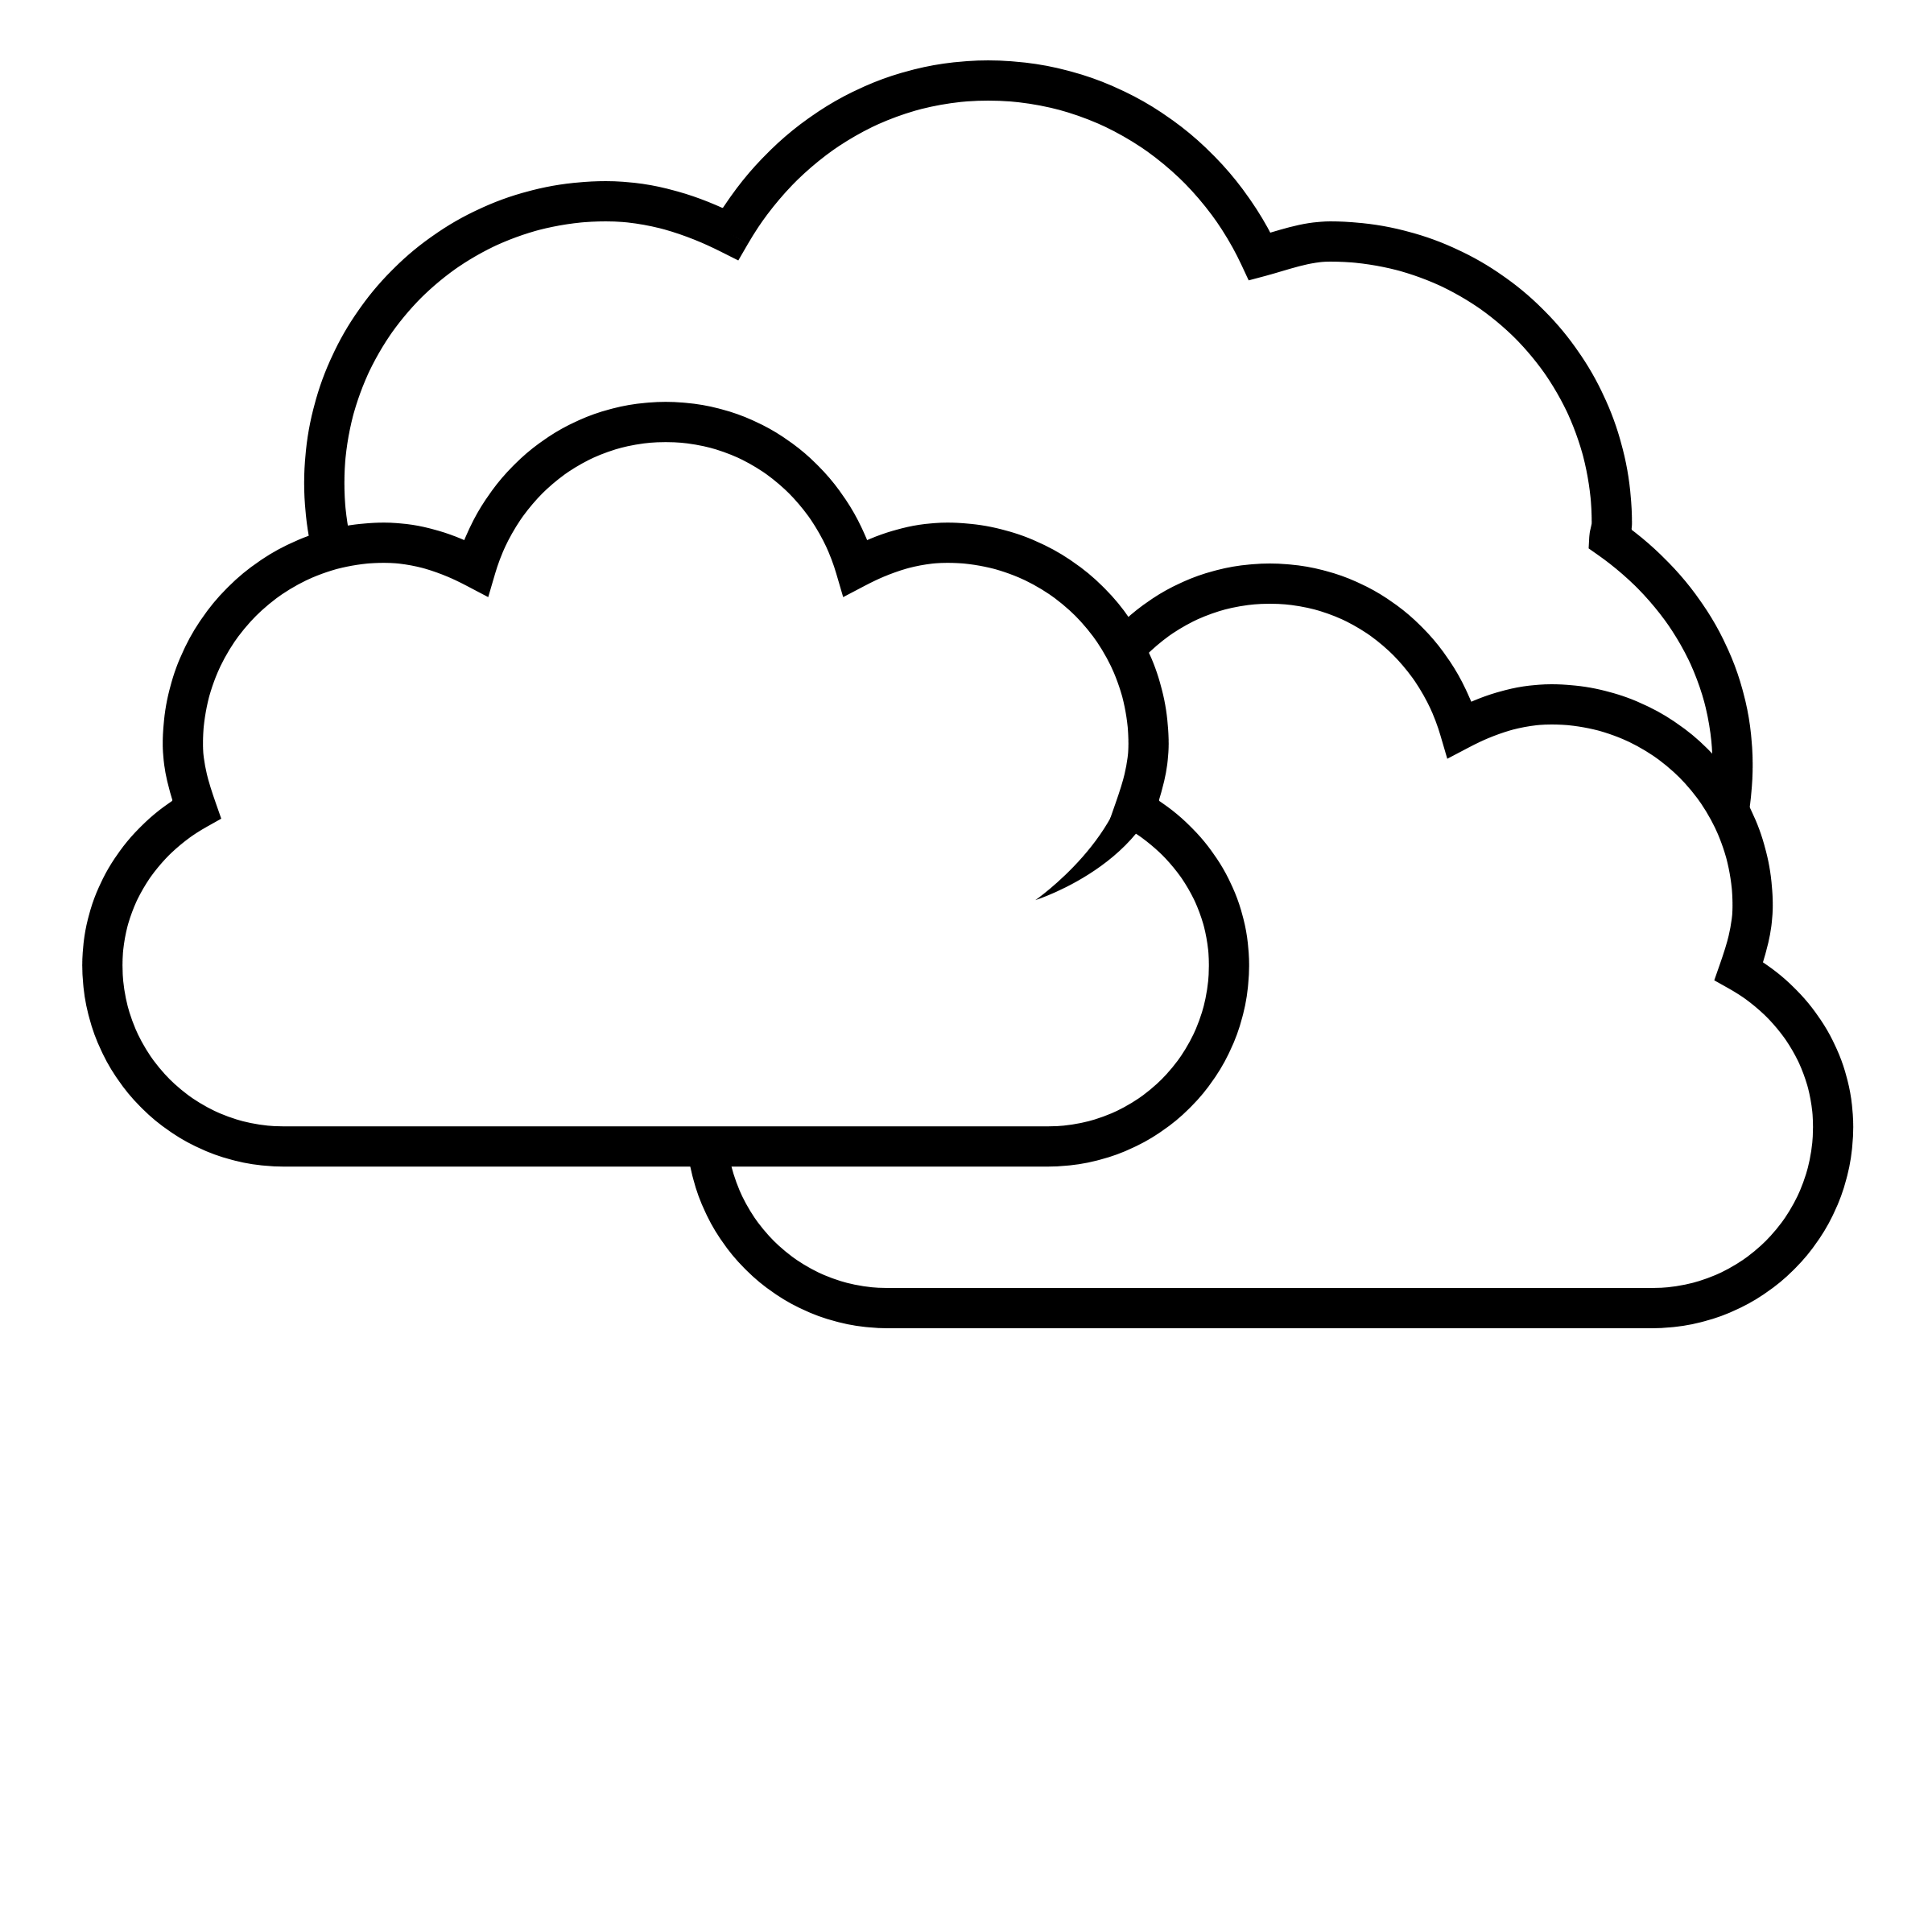 2400x2400 Cloud Black And White Cloud Clip Art Black And White Free Clipart